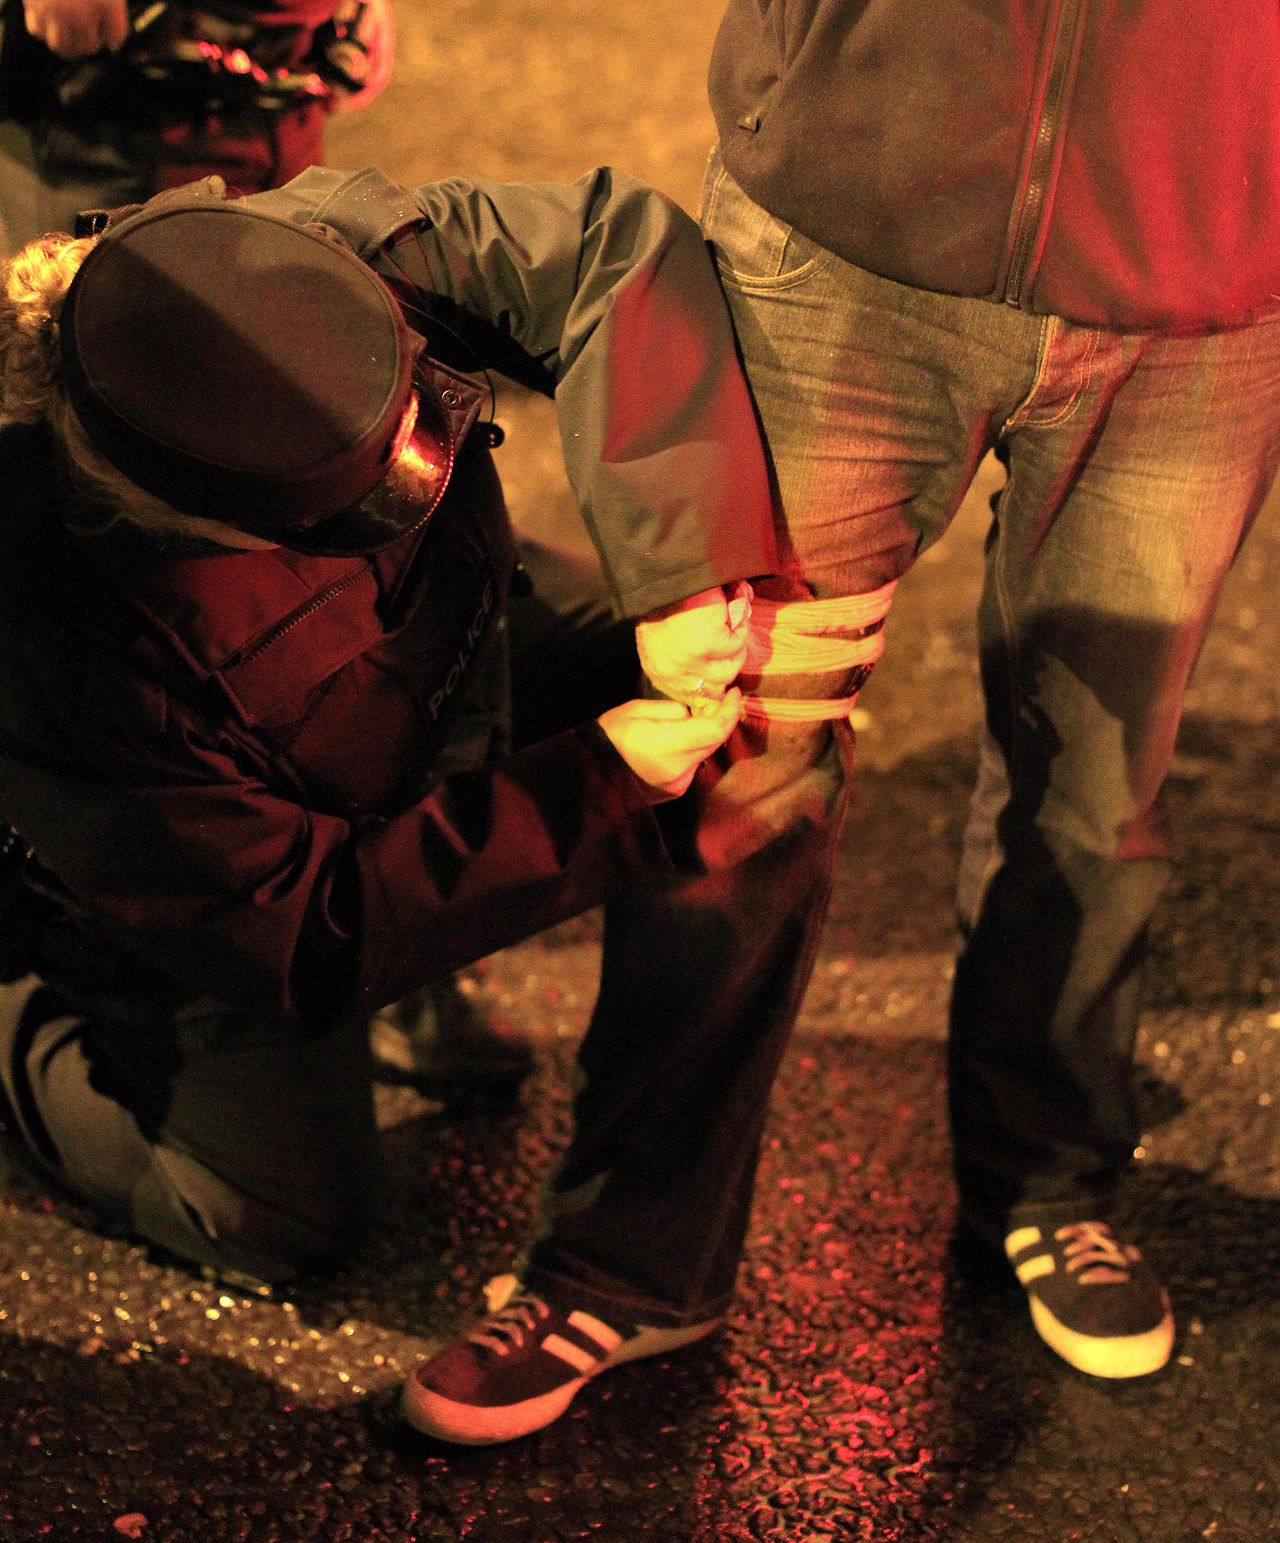 A Northern Ireland police officer puts a bandage on a press photographer's leg after he was shot by a rioter in East Belfast, Northern Ireland, Wednesday, June 22, 2011. Rioting began for the second night between Catholic and Protestant gangs. (AP Photo/Peter Morrison)